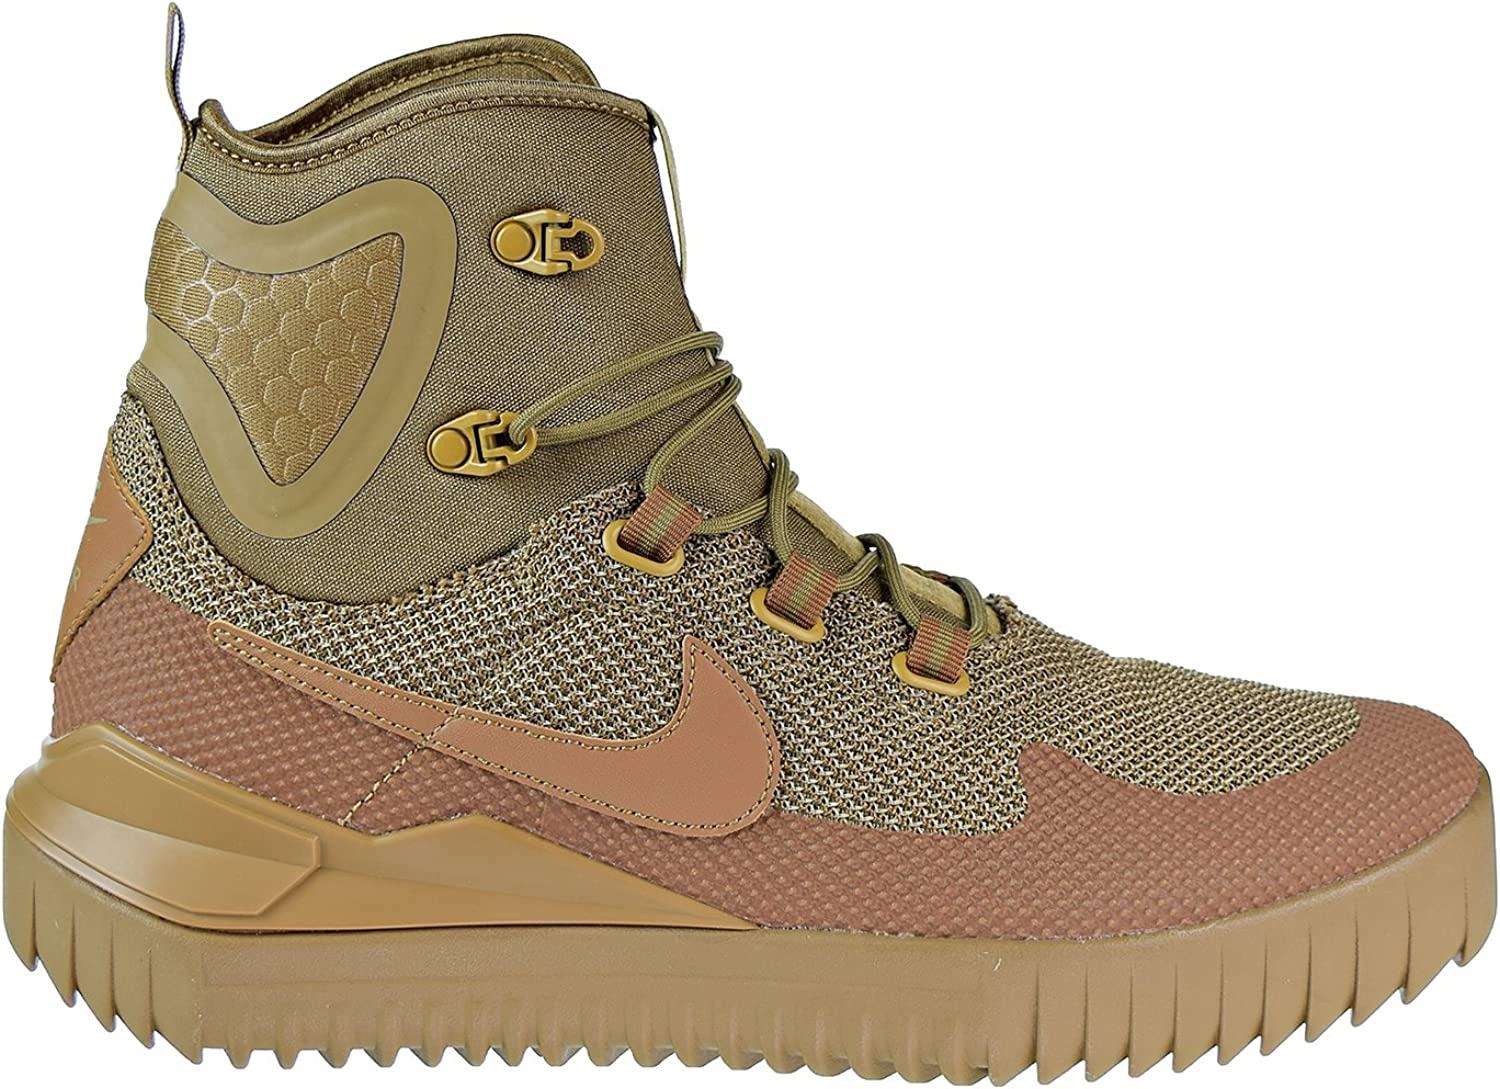 Nike Big Kids Ellie Demi Boot Max A surprise price is realized 45% OFF